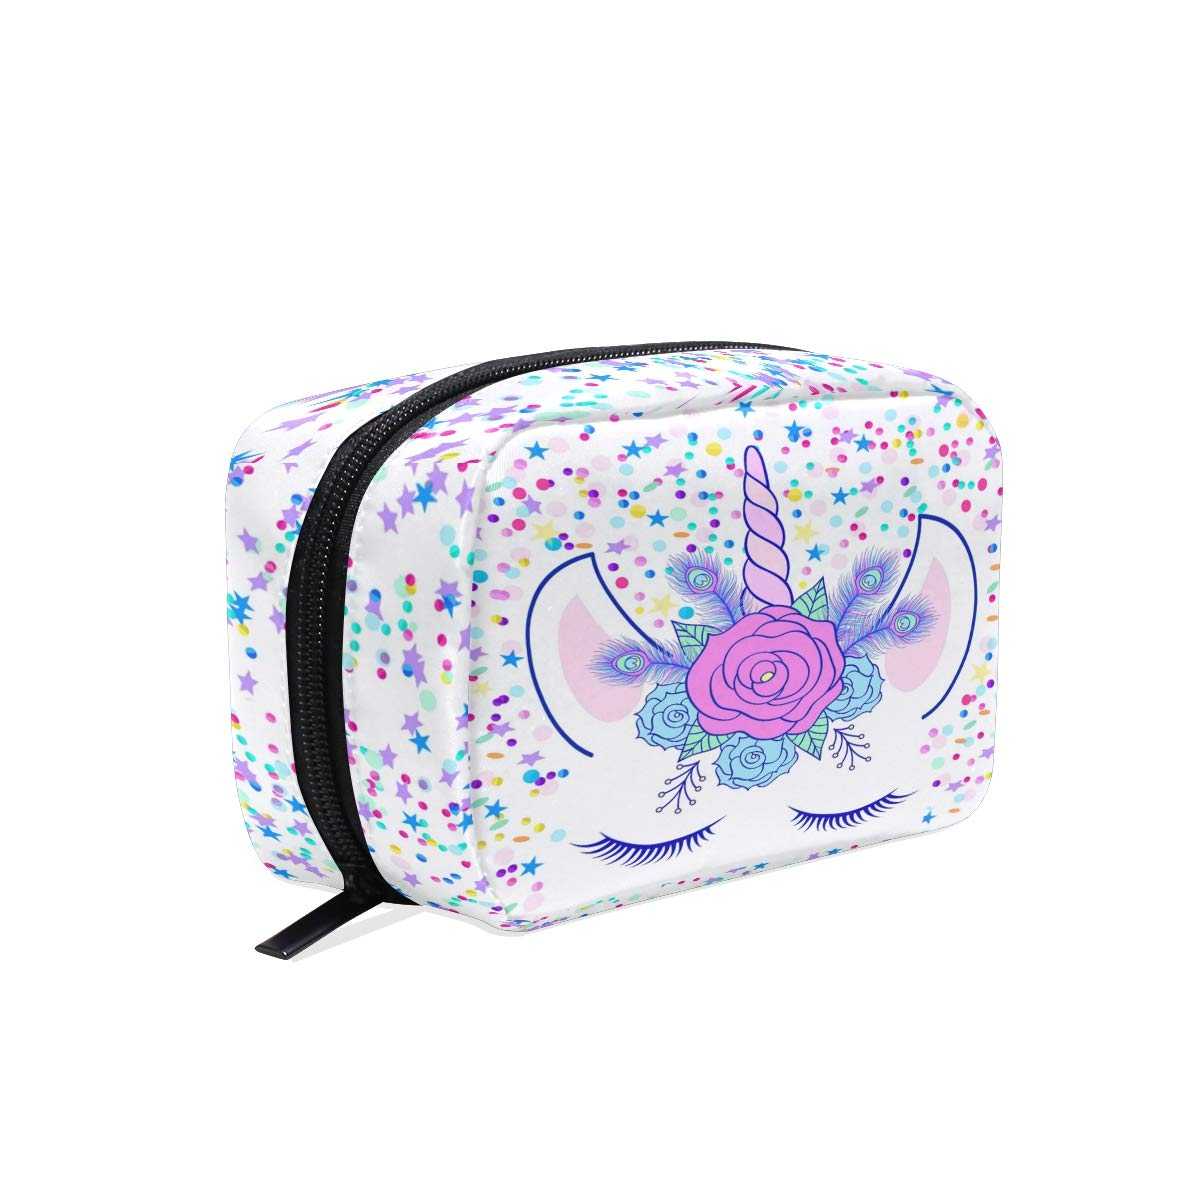 ZOEO Makeup Pouch Unicorn Cream Floral Star Mini Makeup Bag Organizer Travel Zip Toiletry Bag Small Cosmetic Train Case Beauty Bag for Teens Girls Women